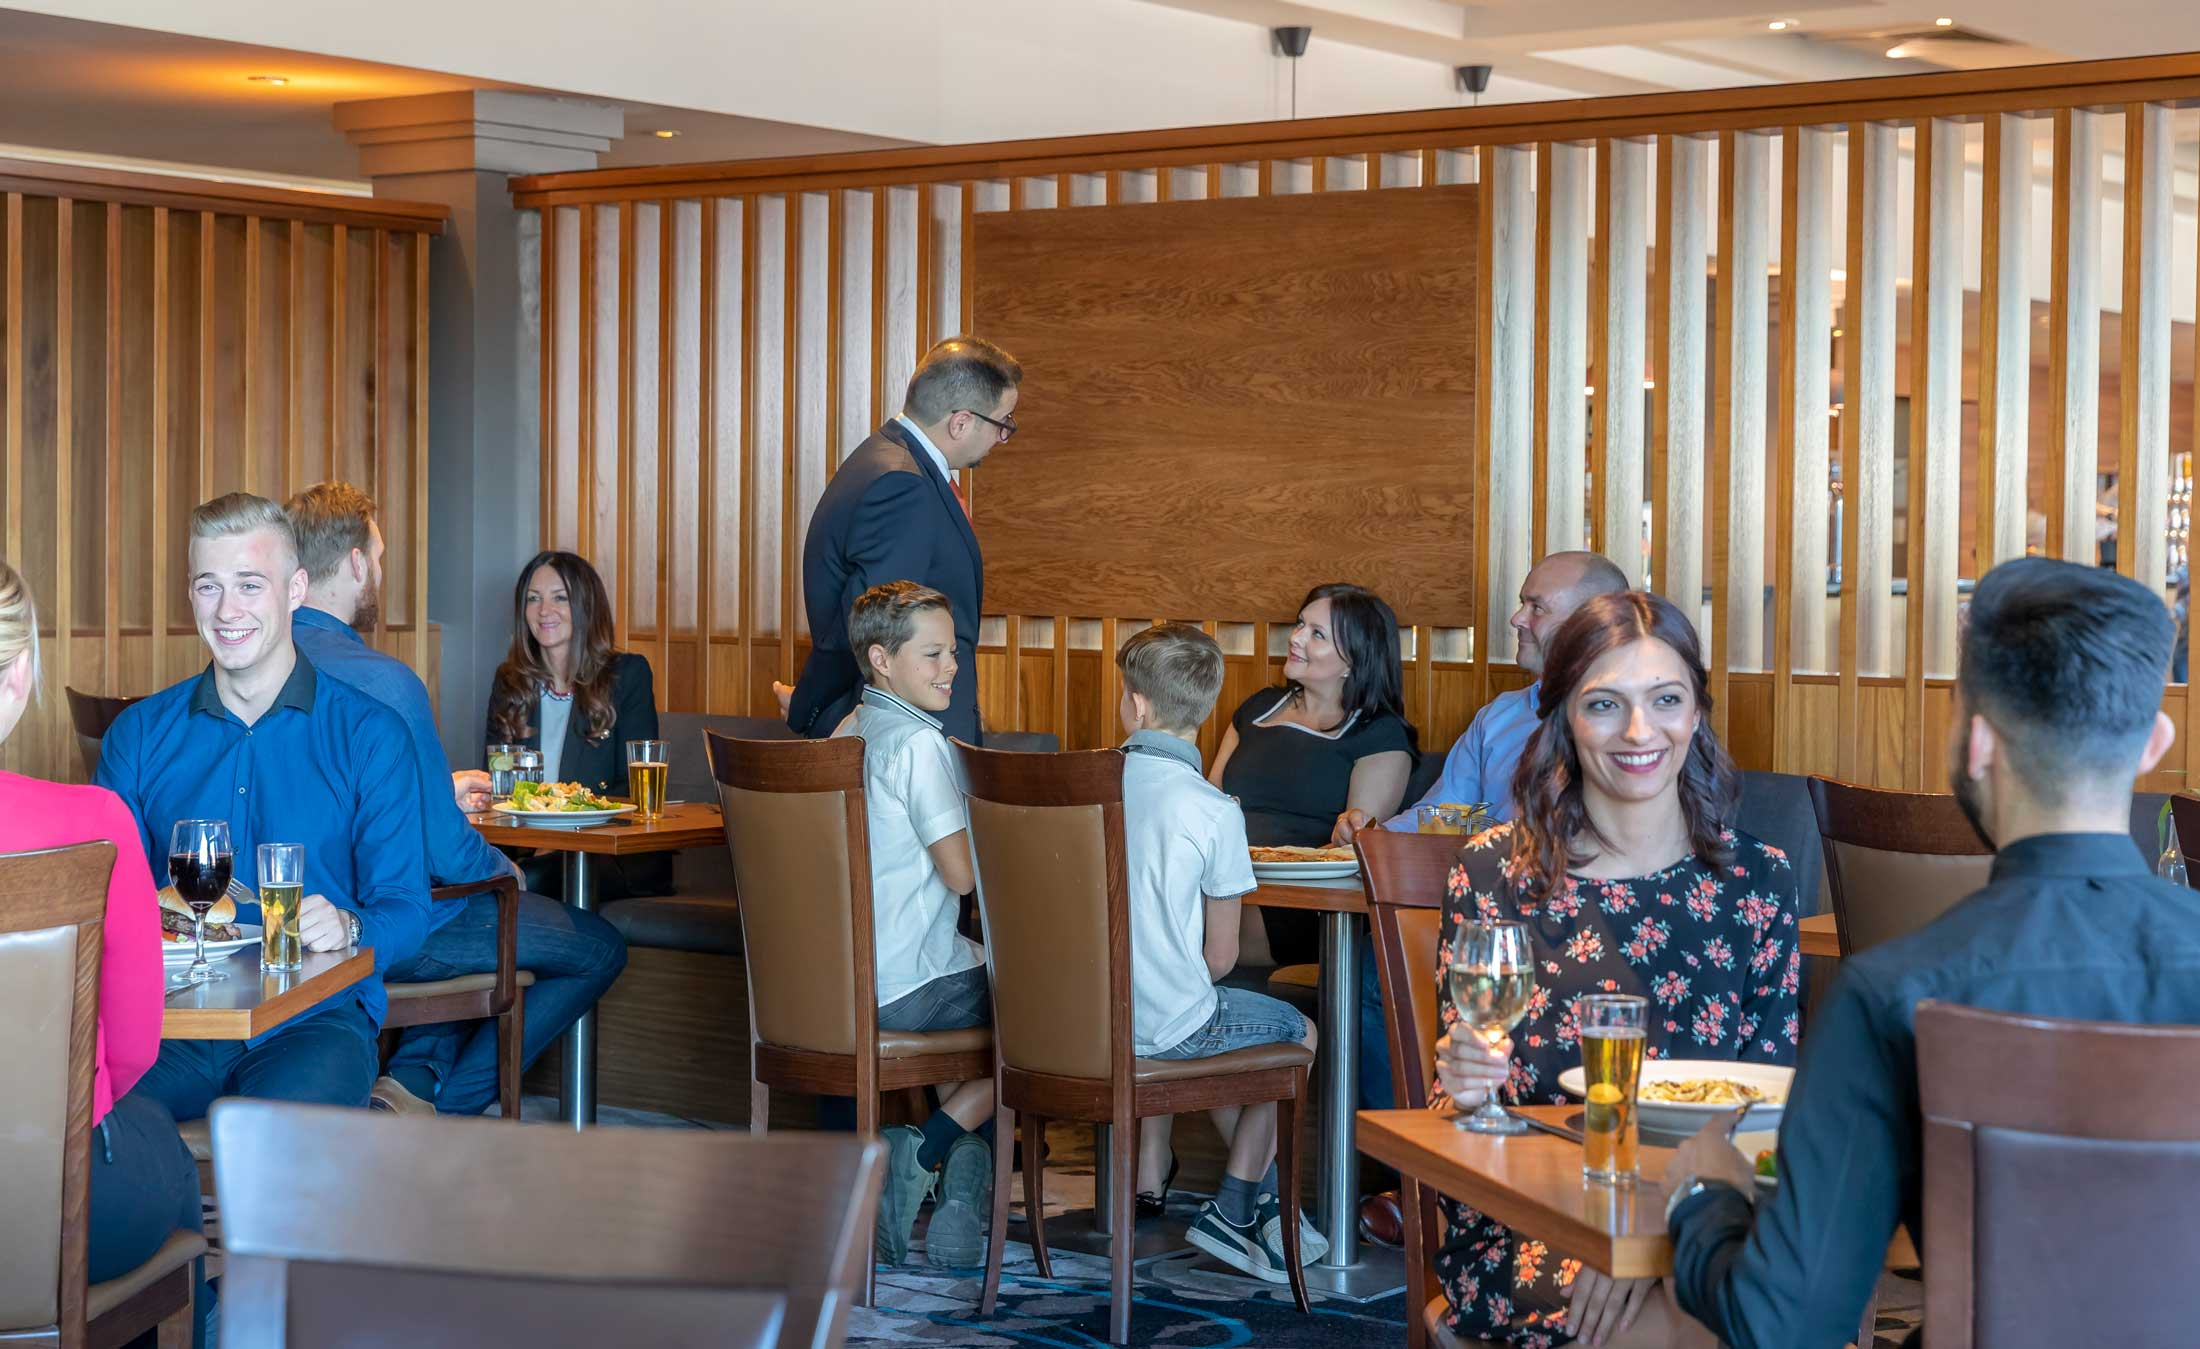 Guests dining in Clayton Hotel Manchester Airport restaurant